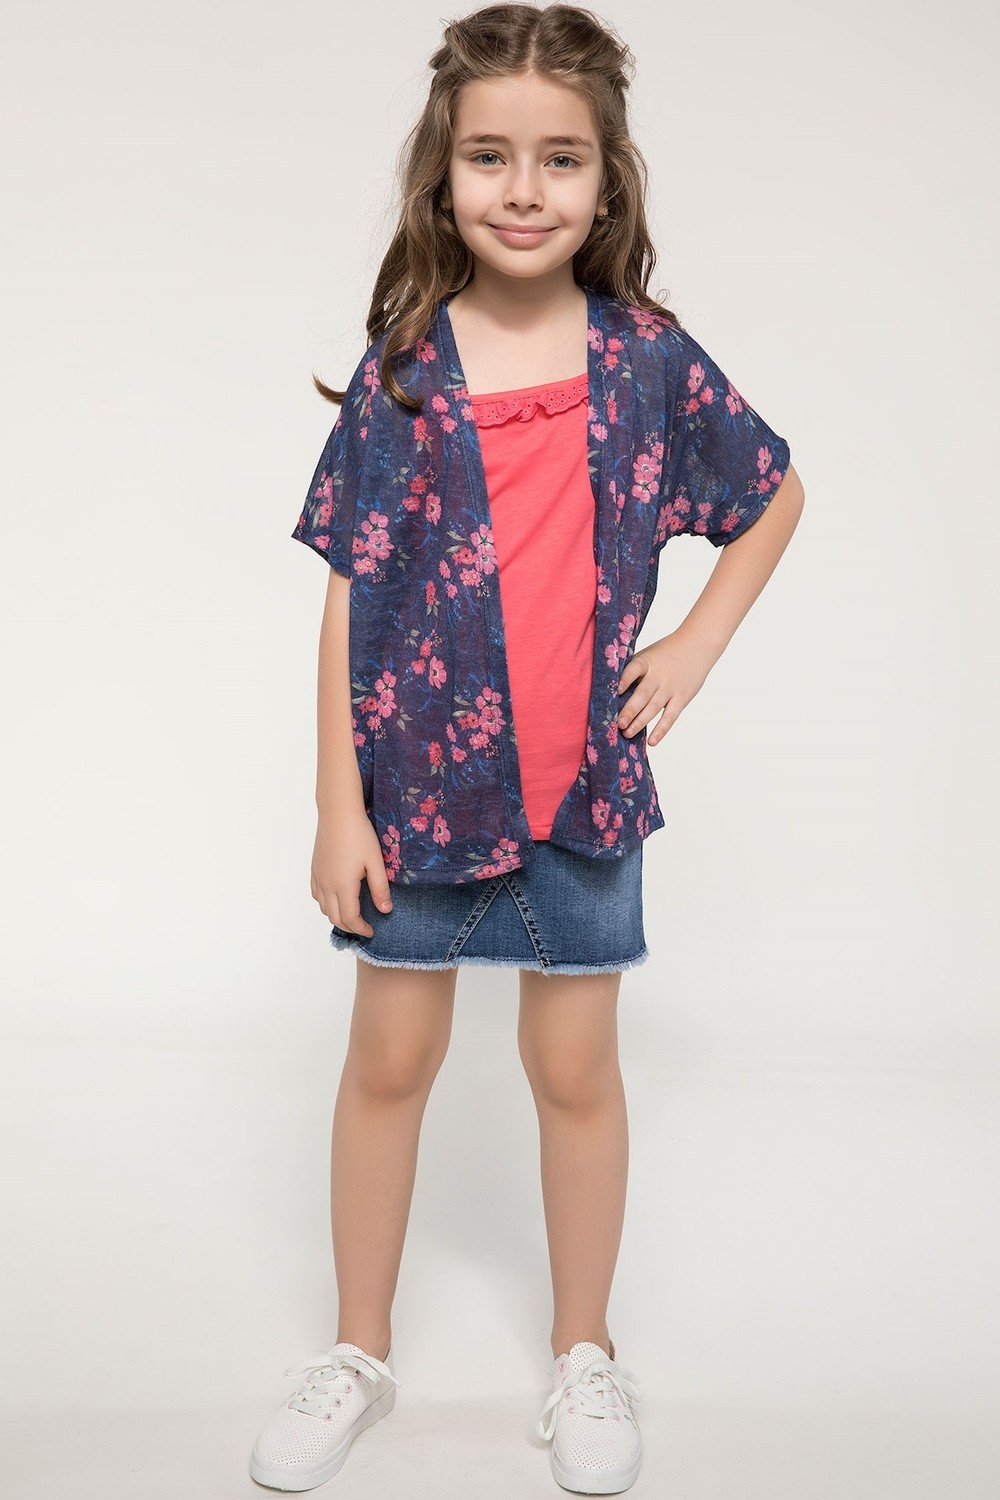 DeFacto Floral Cardigan and Top for Girls